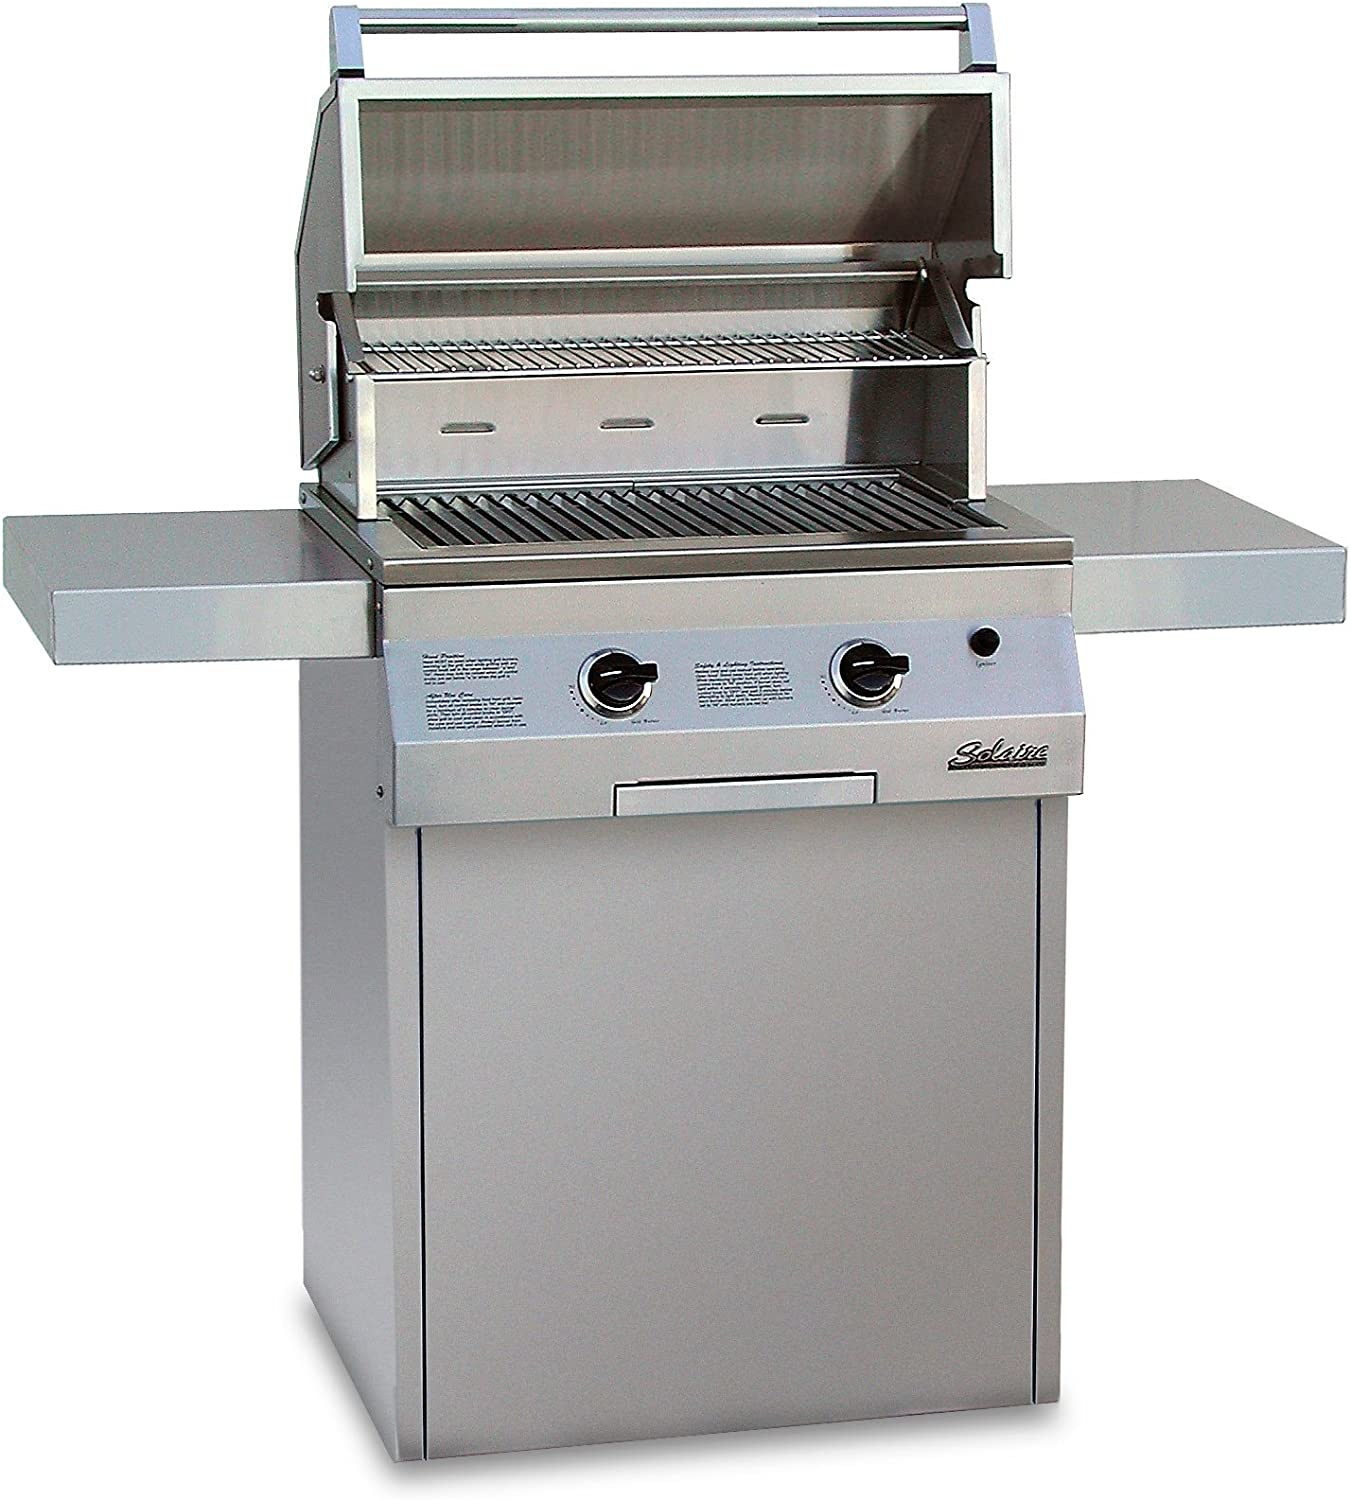 Solaire 27-Inch Deluxe Infrared Natural Seasonal Wrap Popular Introduction on Grill Gas Square Cart